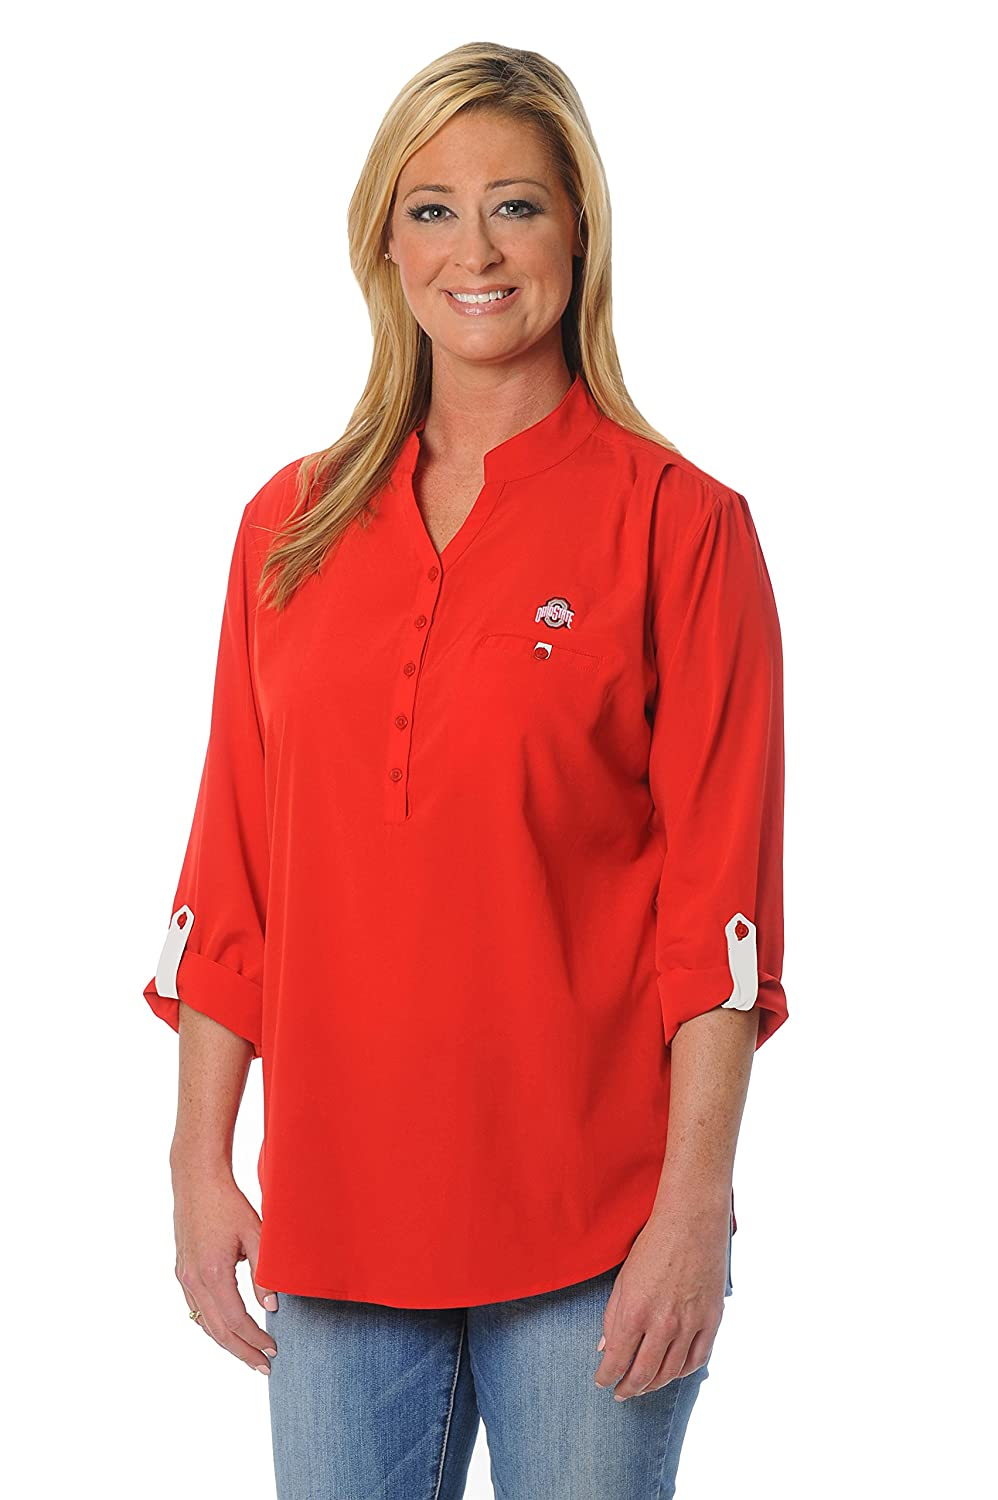 Women's Button Down Ohio State Buckeyes Tunic X Large Red Grey